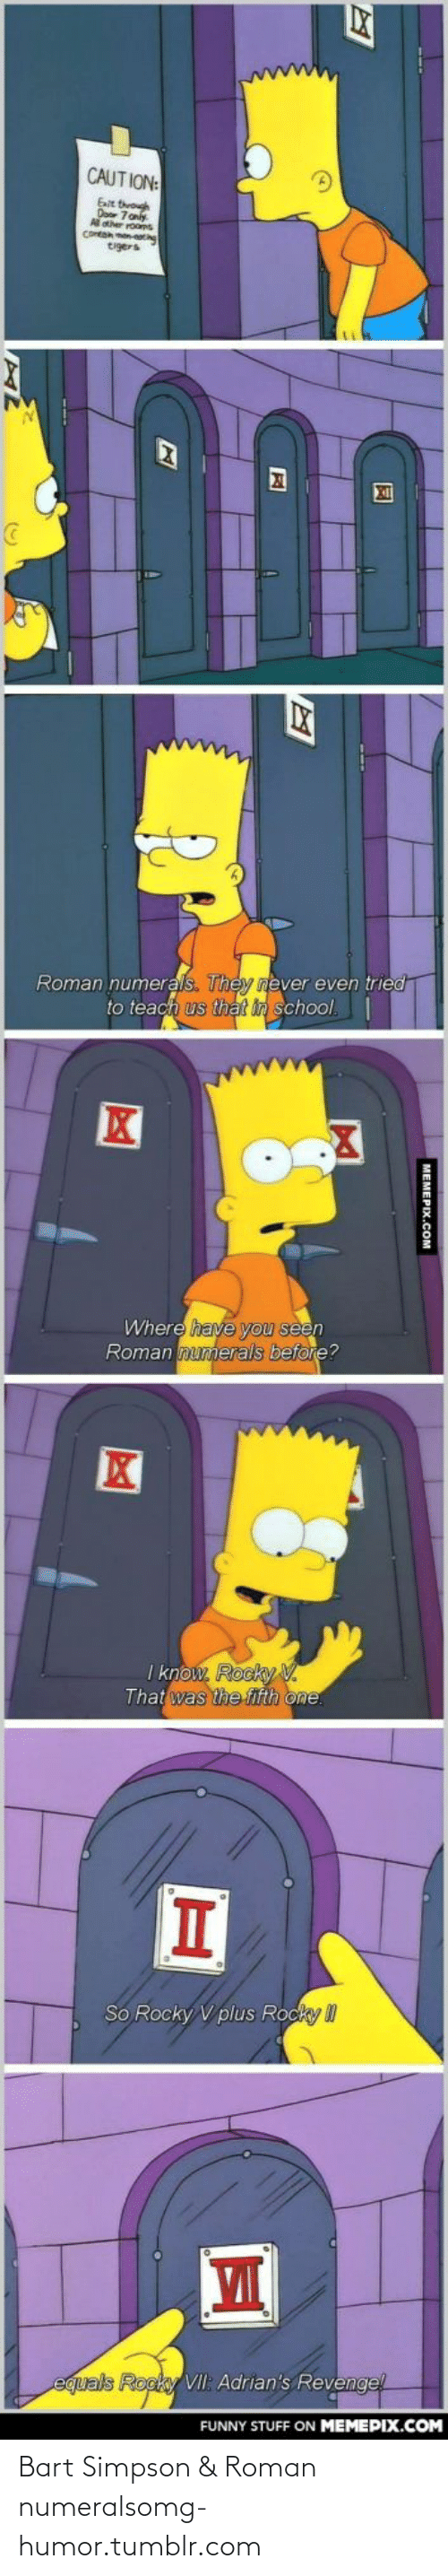 Bart Simpson, Funny, and Omg: CAUTION:  Fat throuh  Kher rooms  tigers  Roman numerals. They never even tried  to teach us that in school.|  Where have you seen  Roman numerals before?  I know. Rocky .  That was the fifth one.  So Rocky V plus Rocky II  equals Rocky VII: Adrian's Revengel  FUNNY STUFF ON MEMEPIX.COM  MEMEPIX.COM Bart Simpson & Roman numeralsomg-humor.tumblr.com